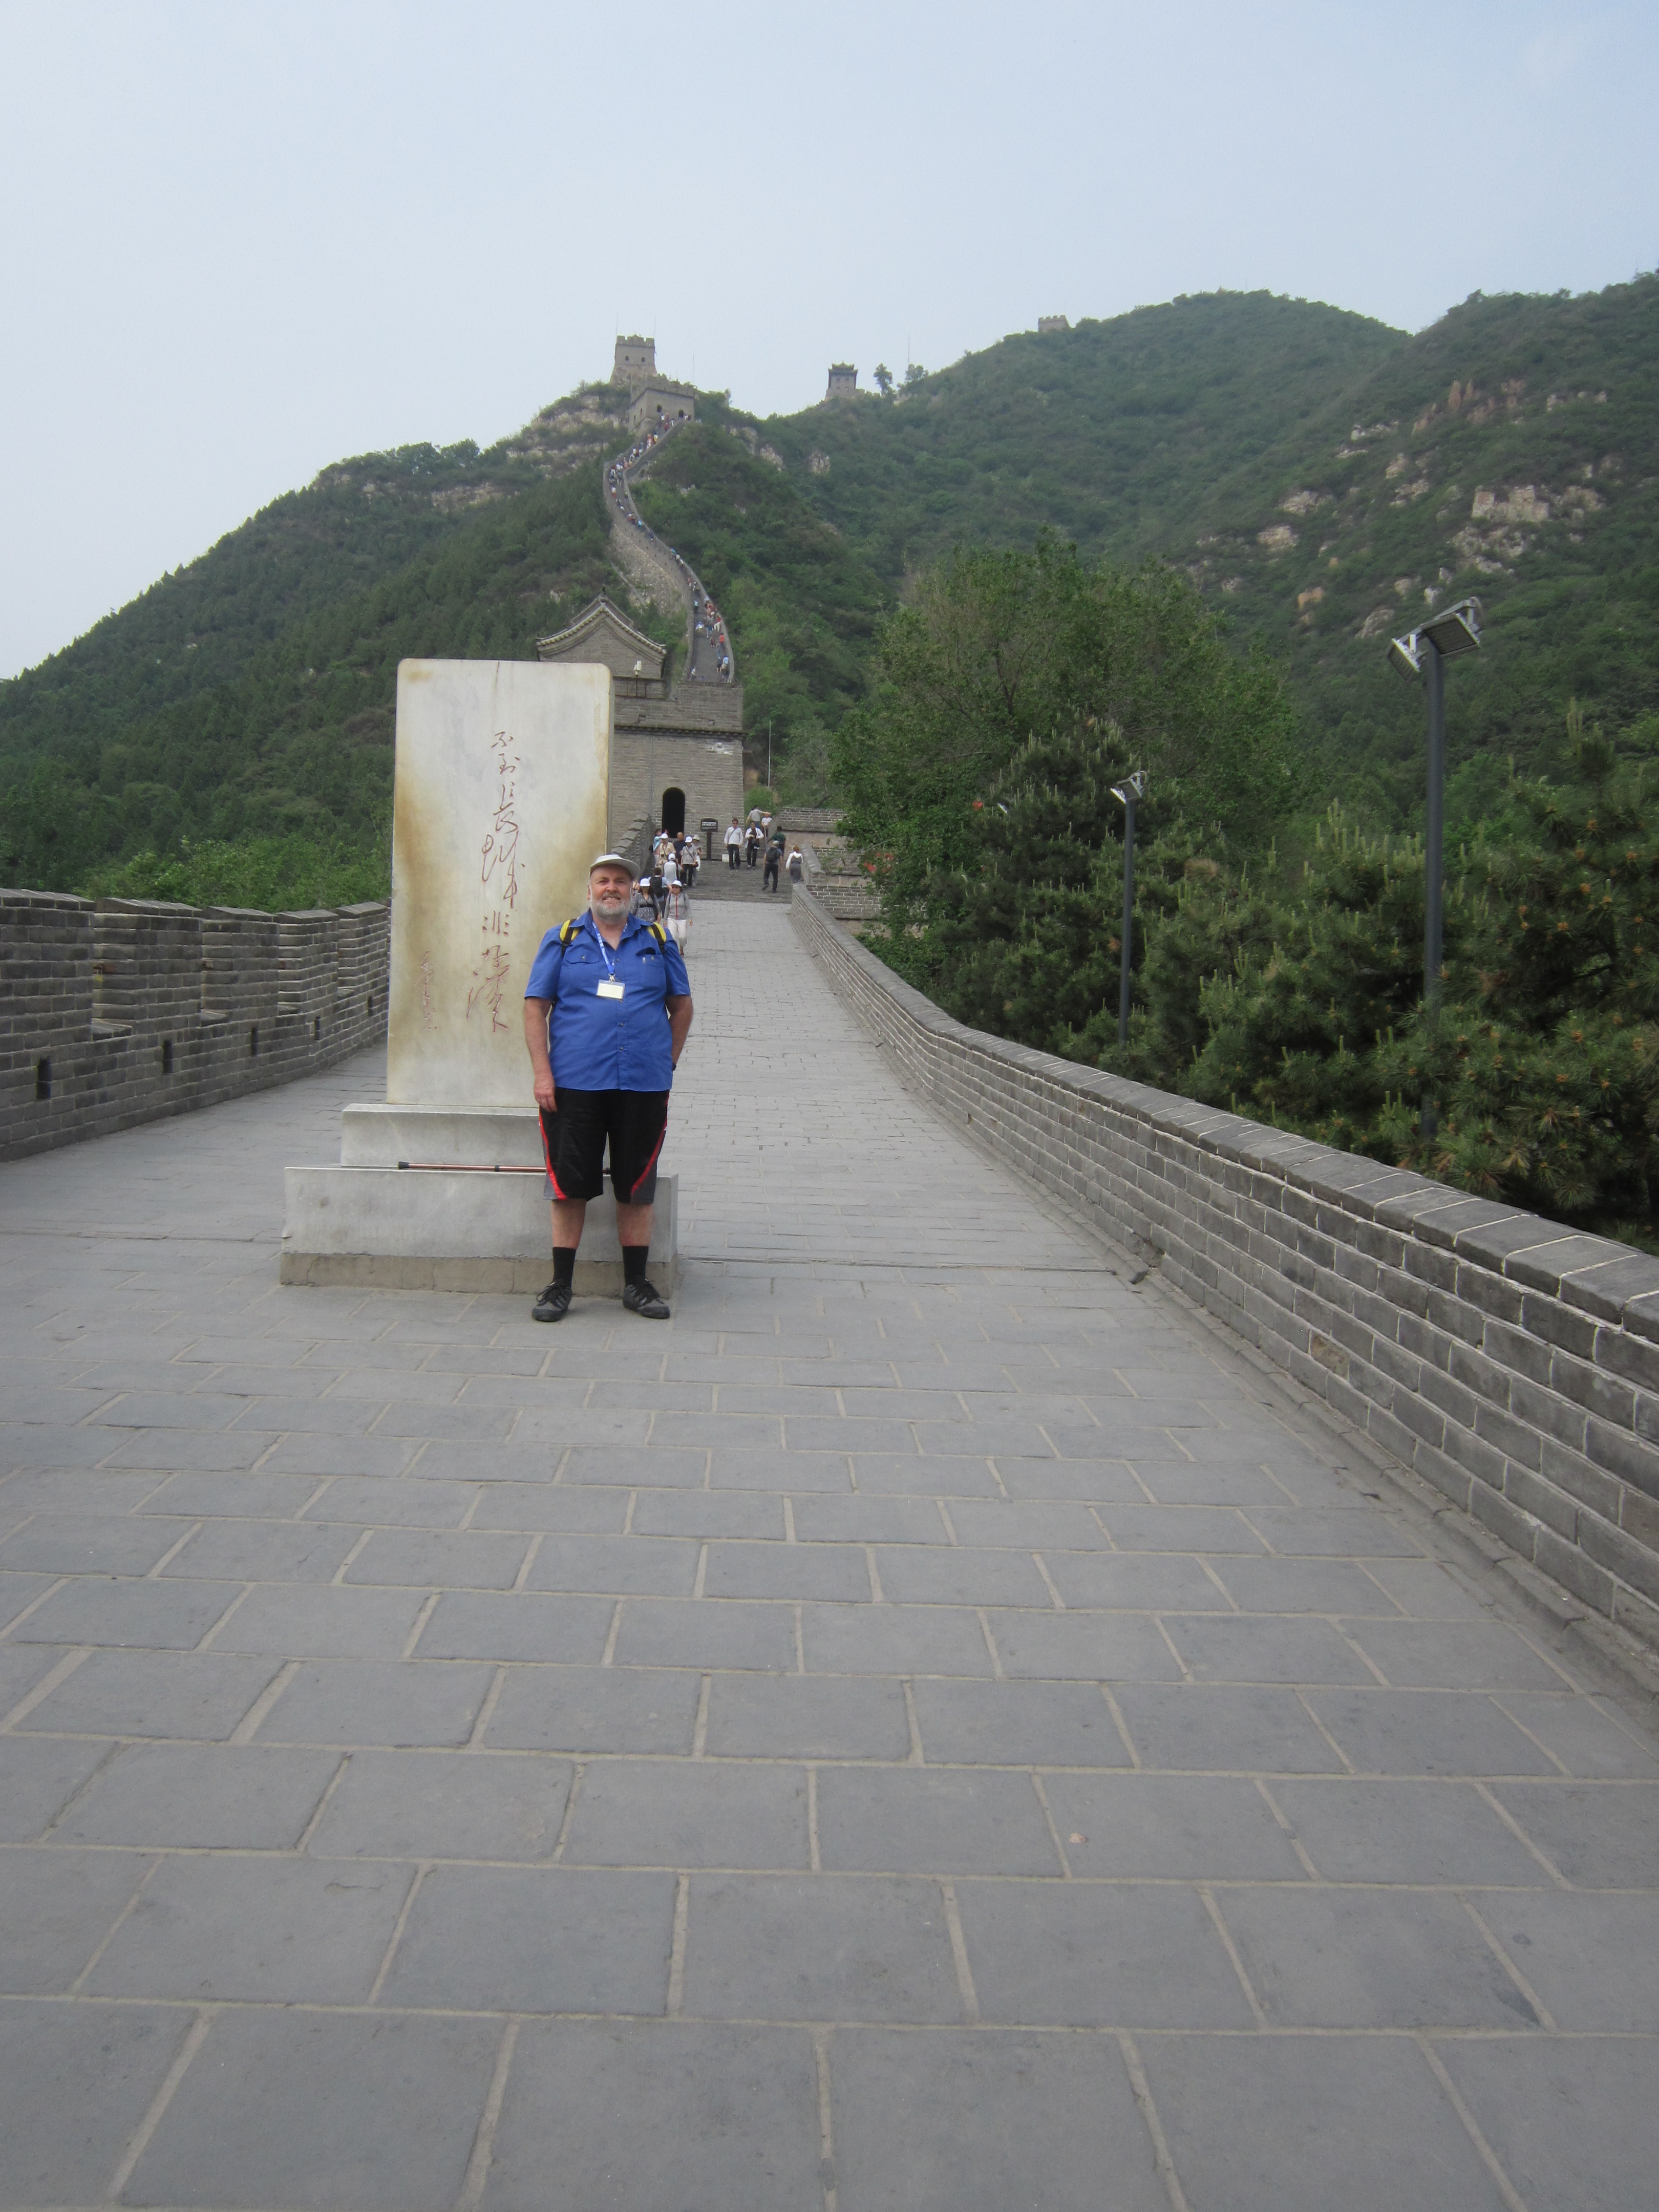 AlanGreatWall